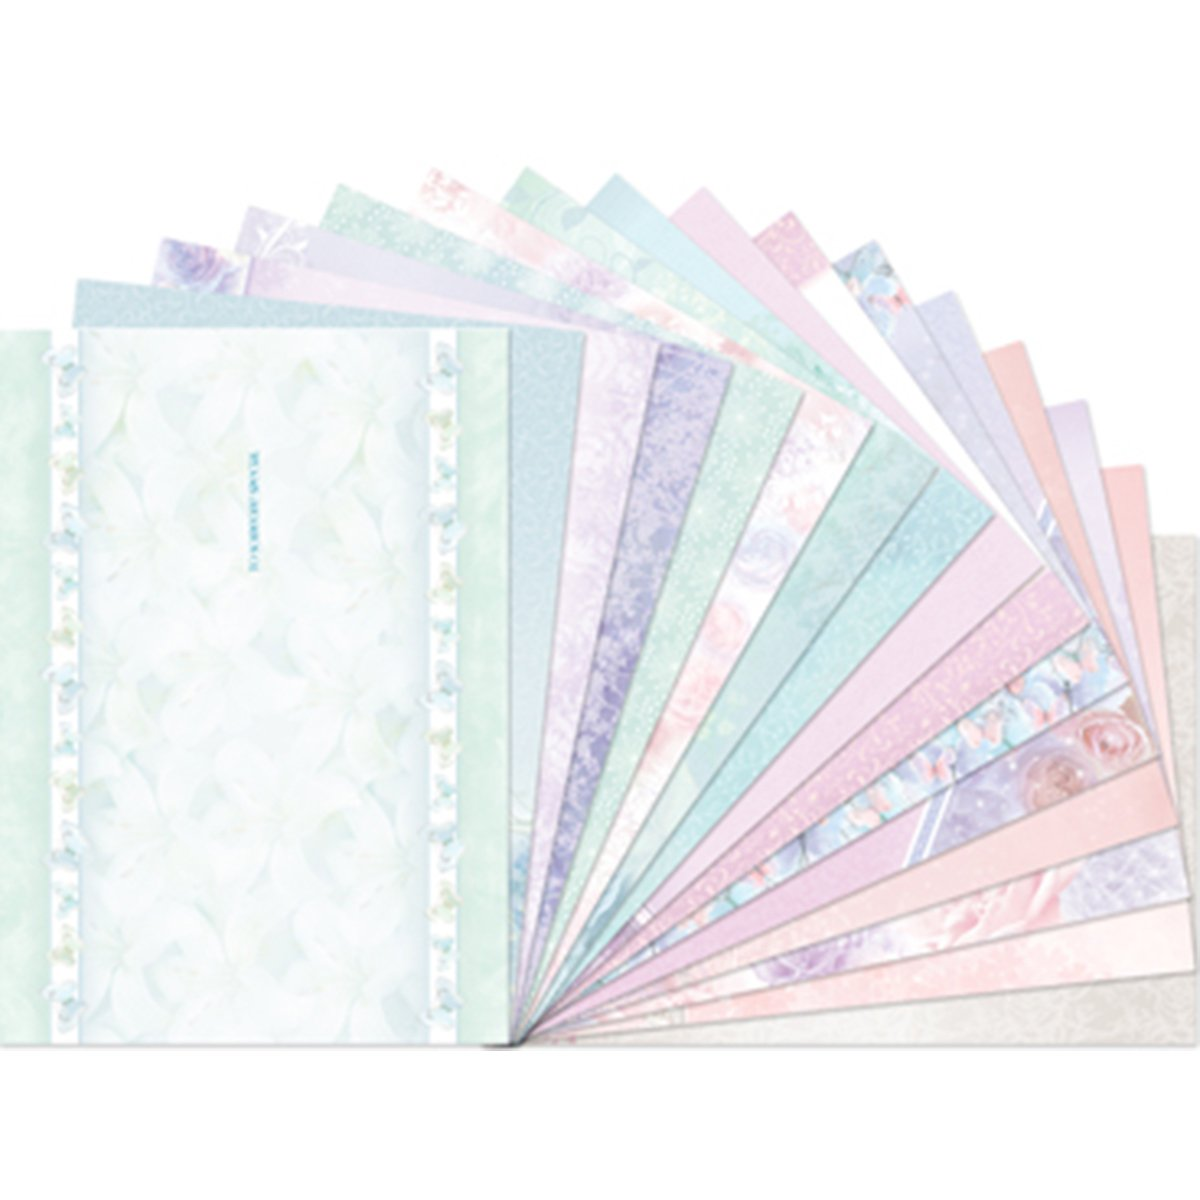 Hunkydory Floral Shimmer Luxury Inserts for Cards Hunkydory Crafts